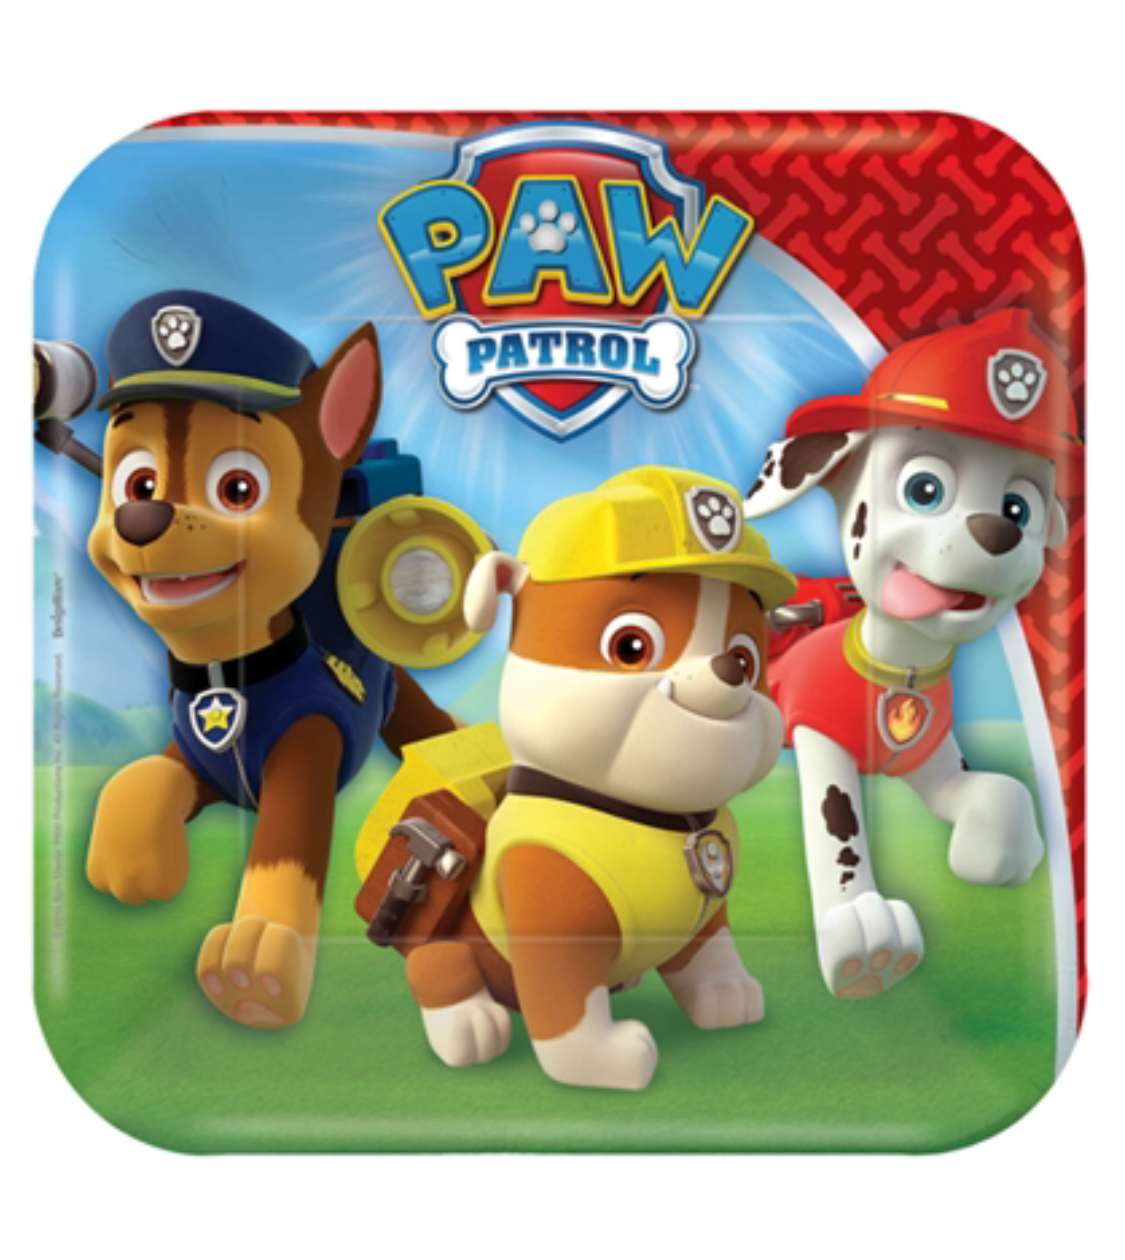 Paw Patrol party plates square snack size